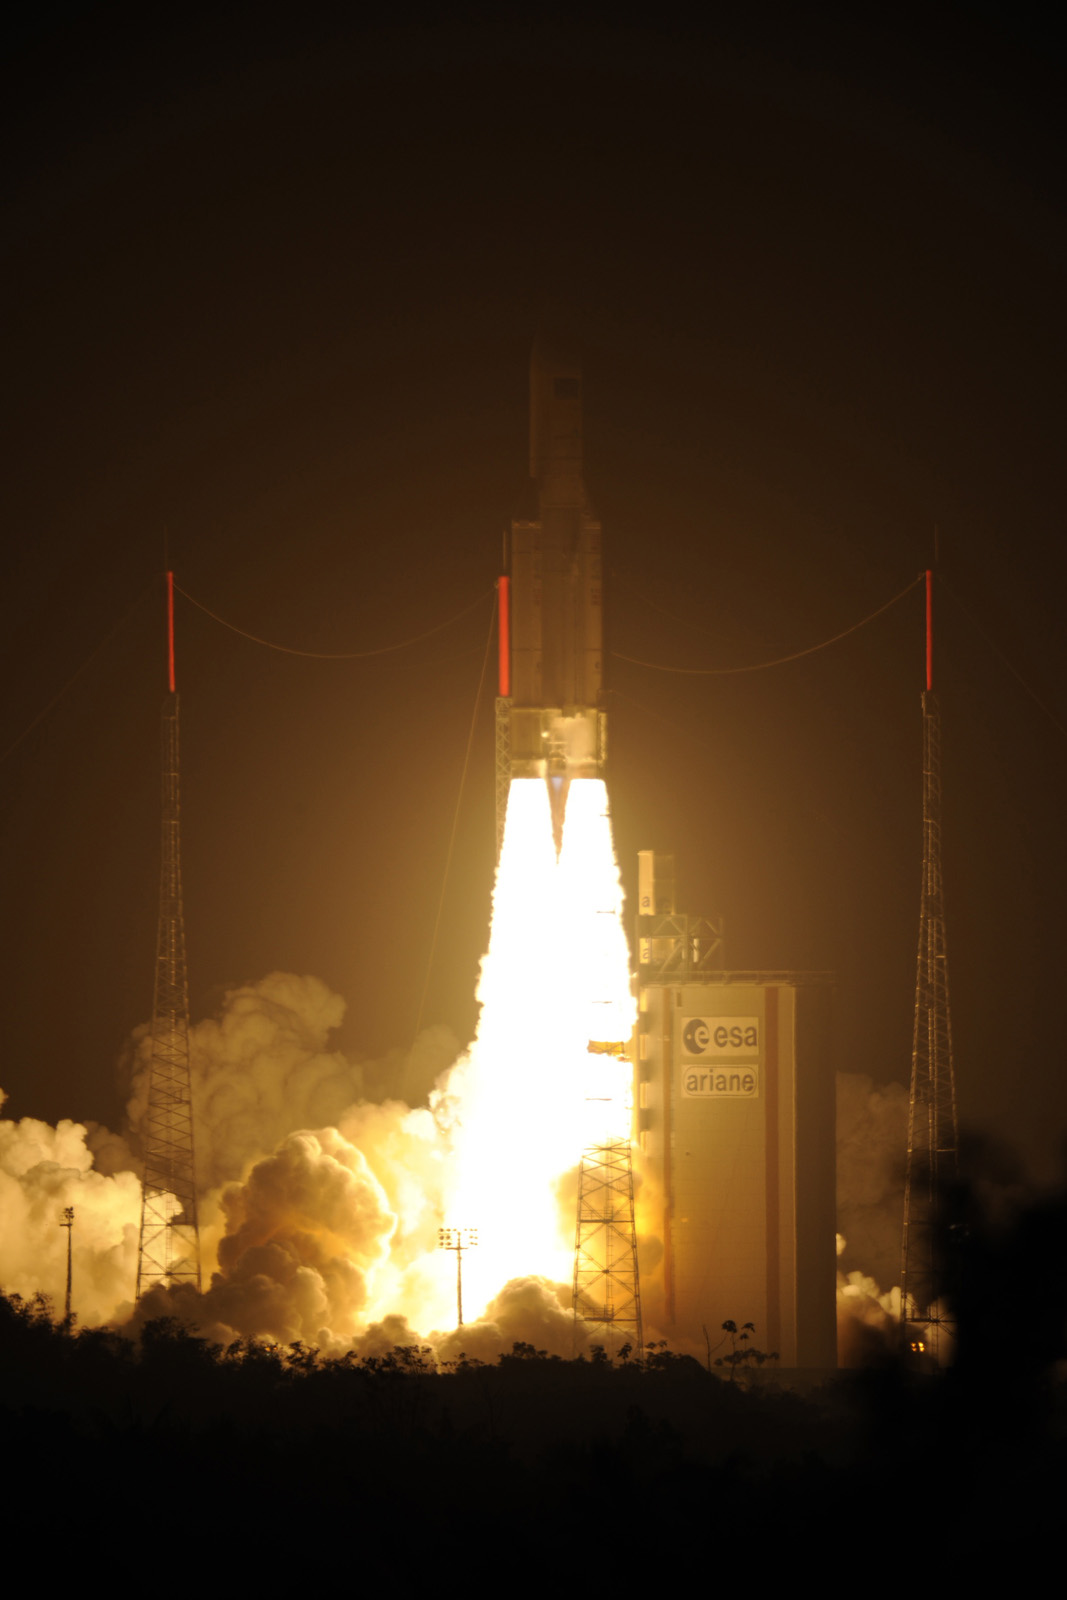 ATV-3 Cargo Ship Lights Up Sky: March 23, 2012 Launch